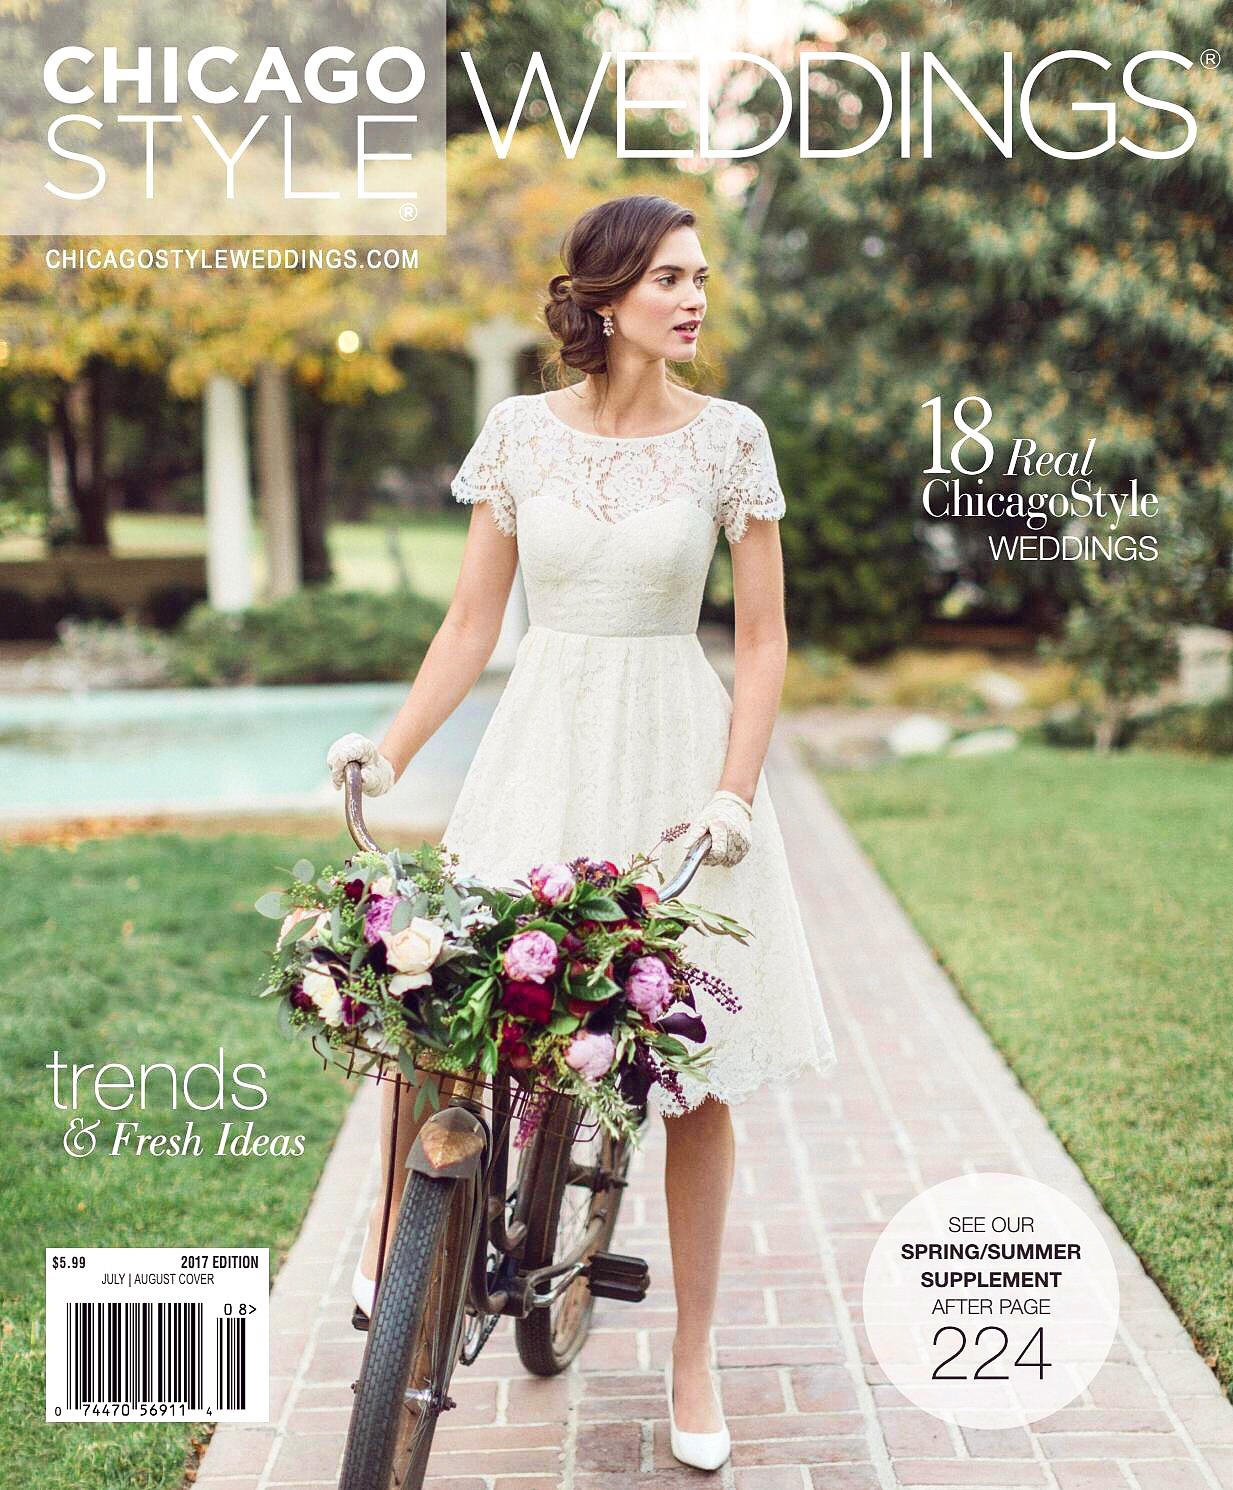 chicago style weddings cover